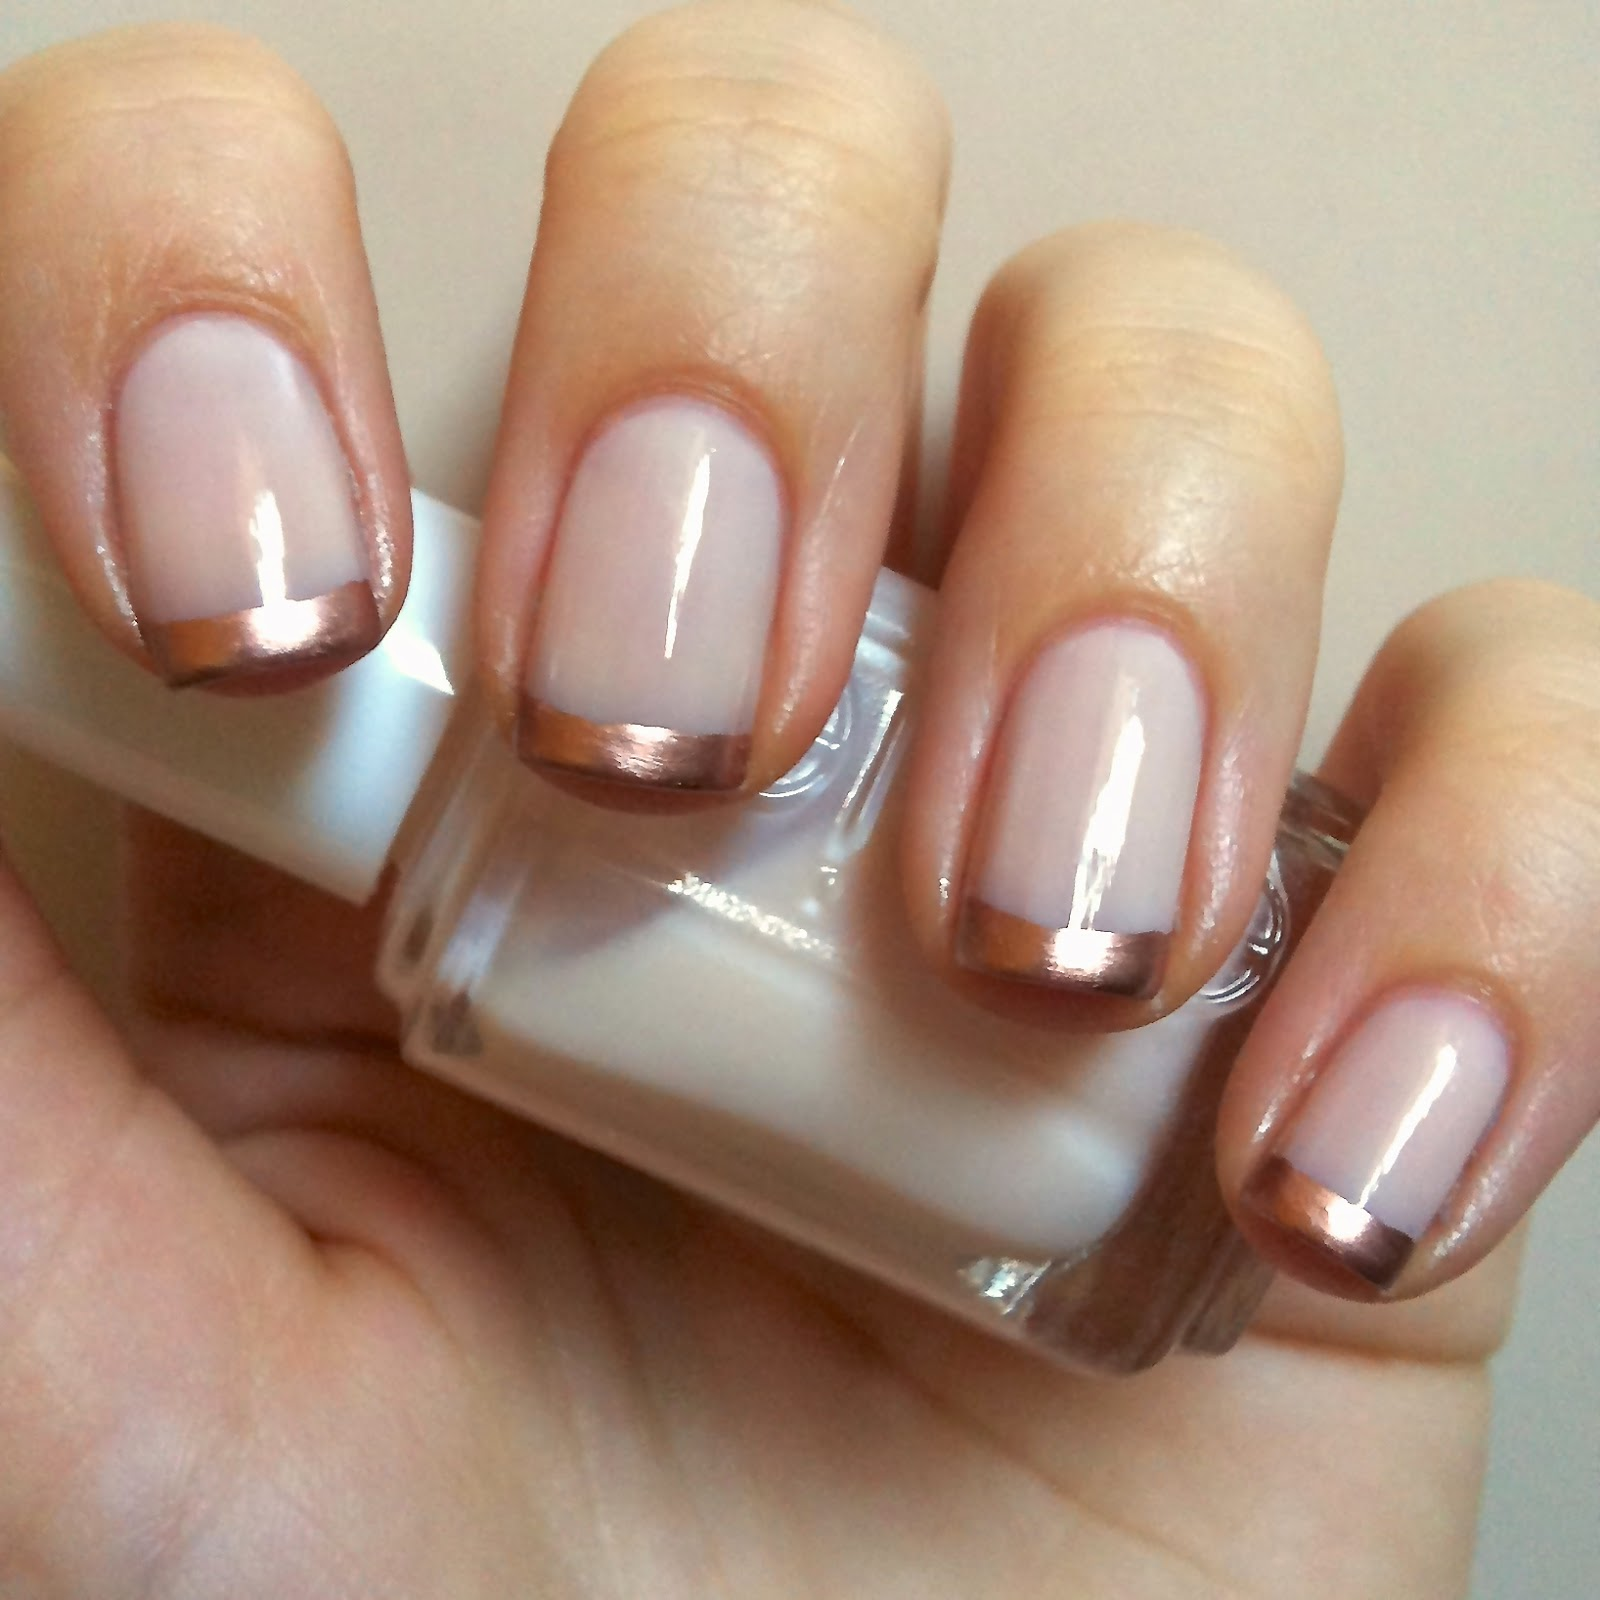 Essie Metallic Gold Nail Polish: Nails Always Polished: Rose Gold French Manicure